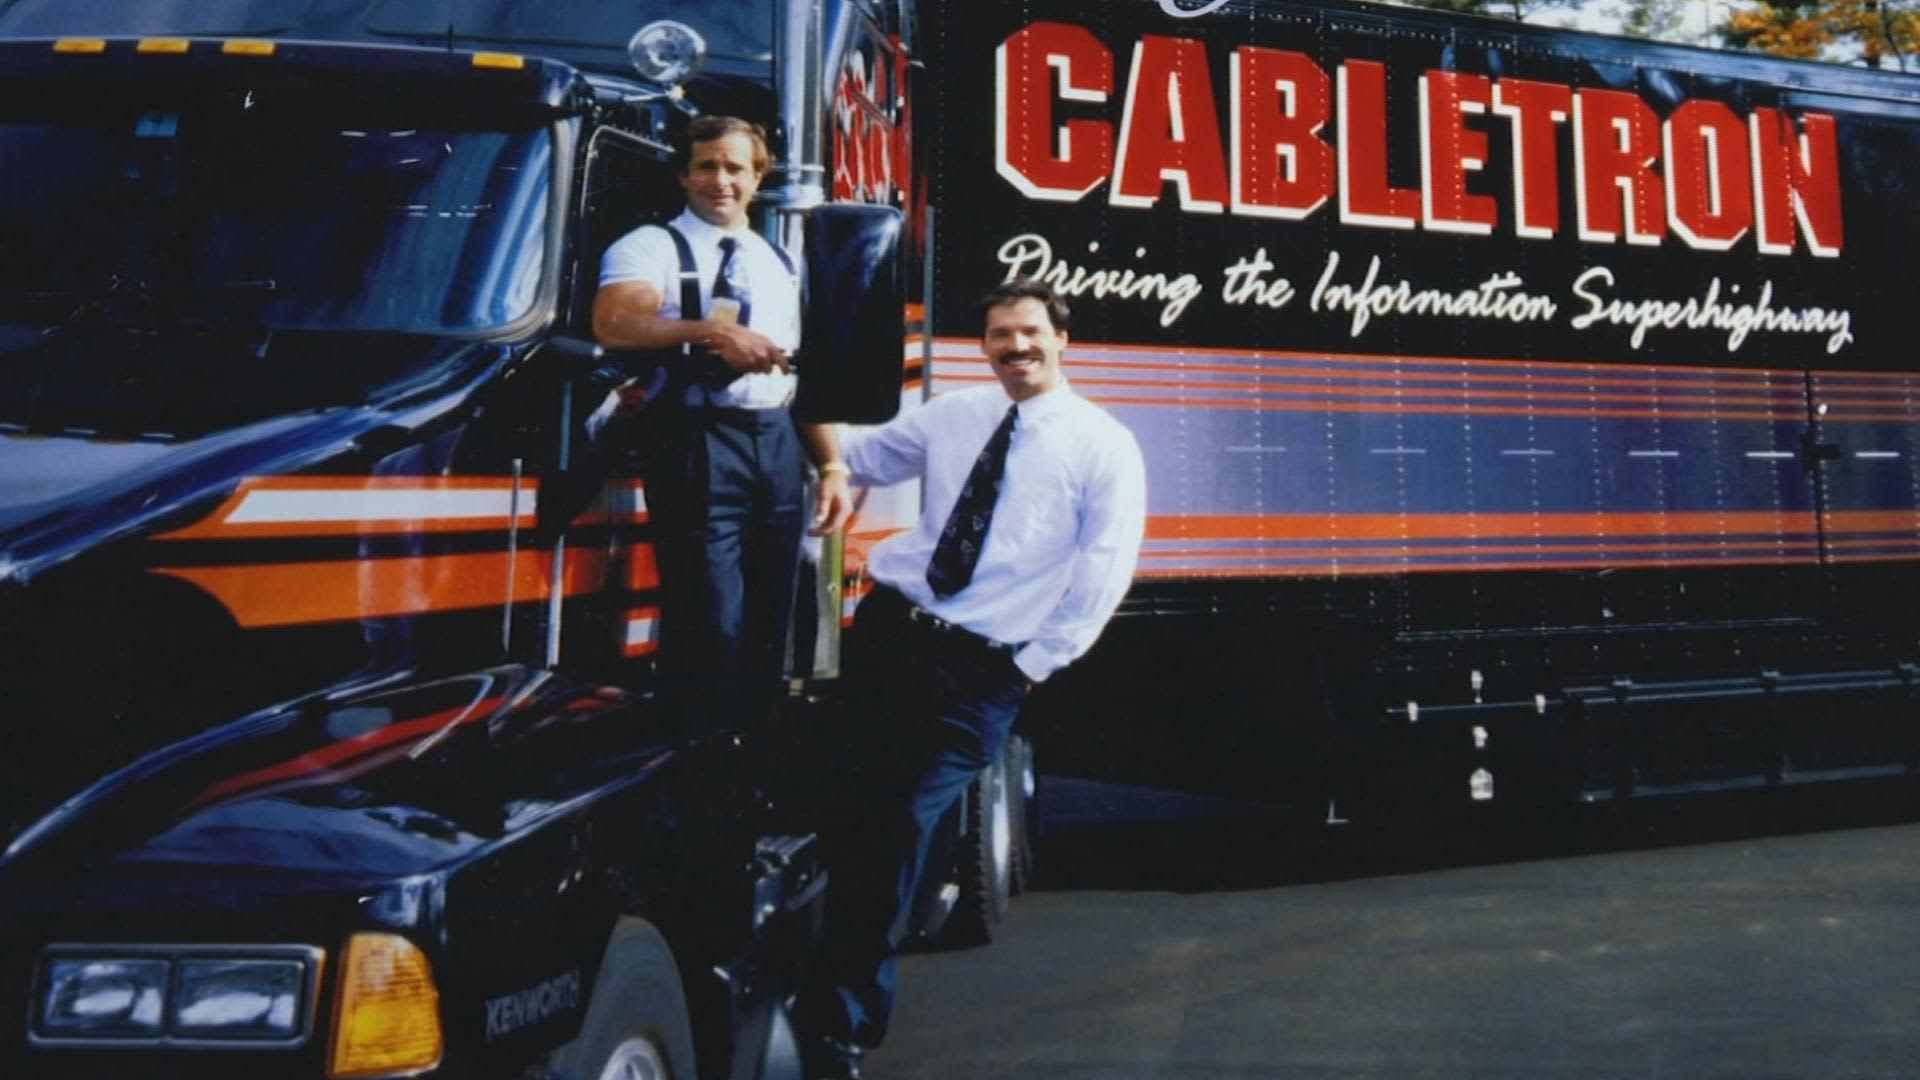 Bob Levine (L) and Craig Benson (R) co-founders of Cabletron Systems